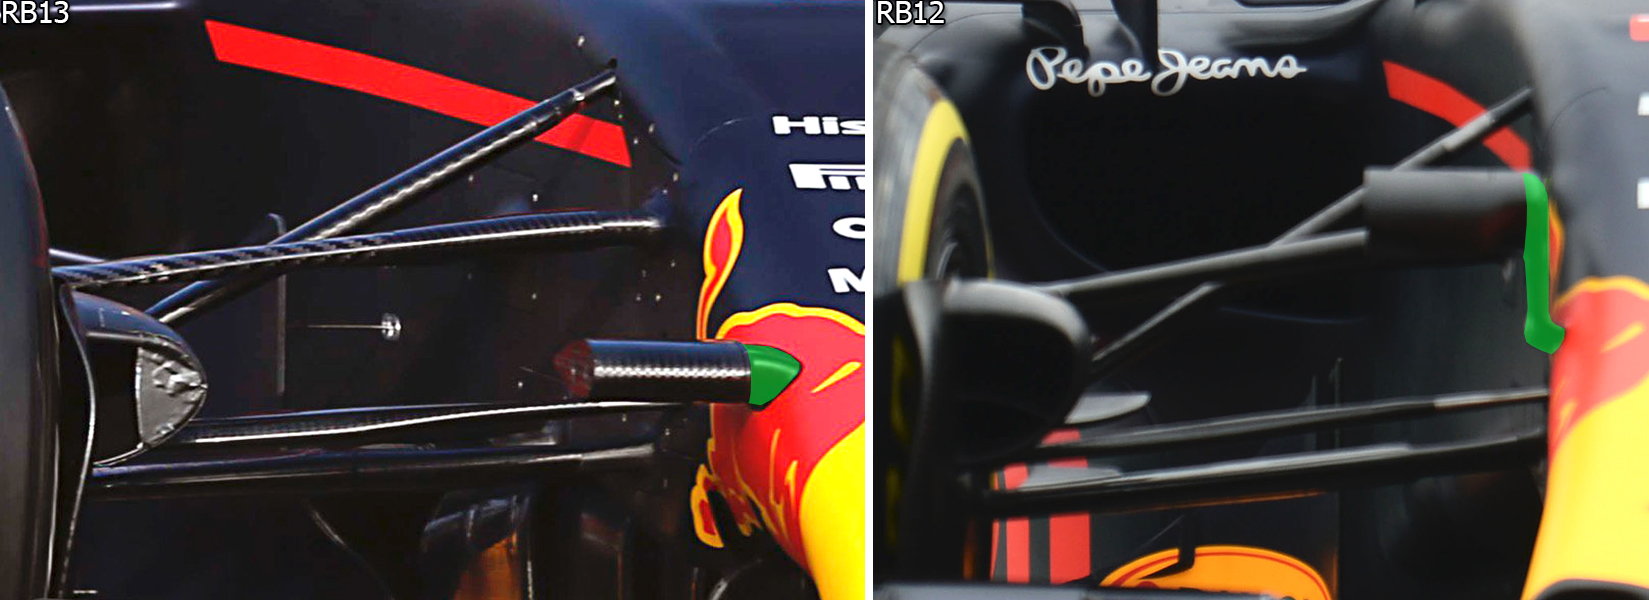 rb13-suspension